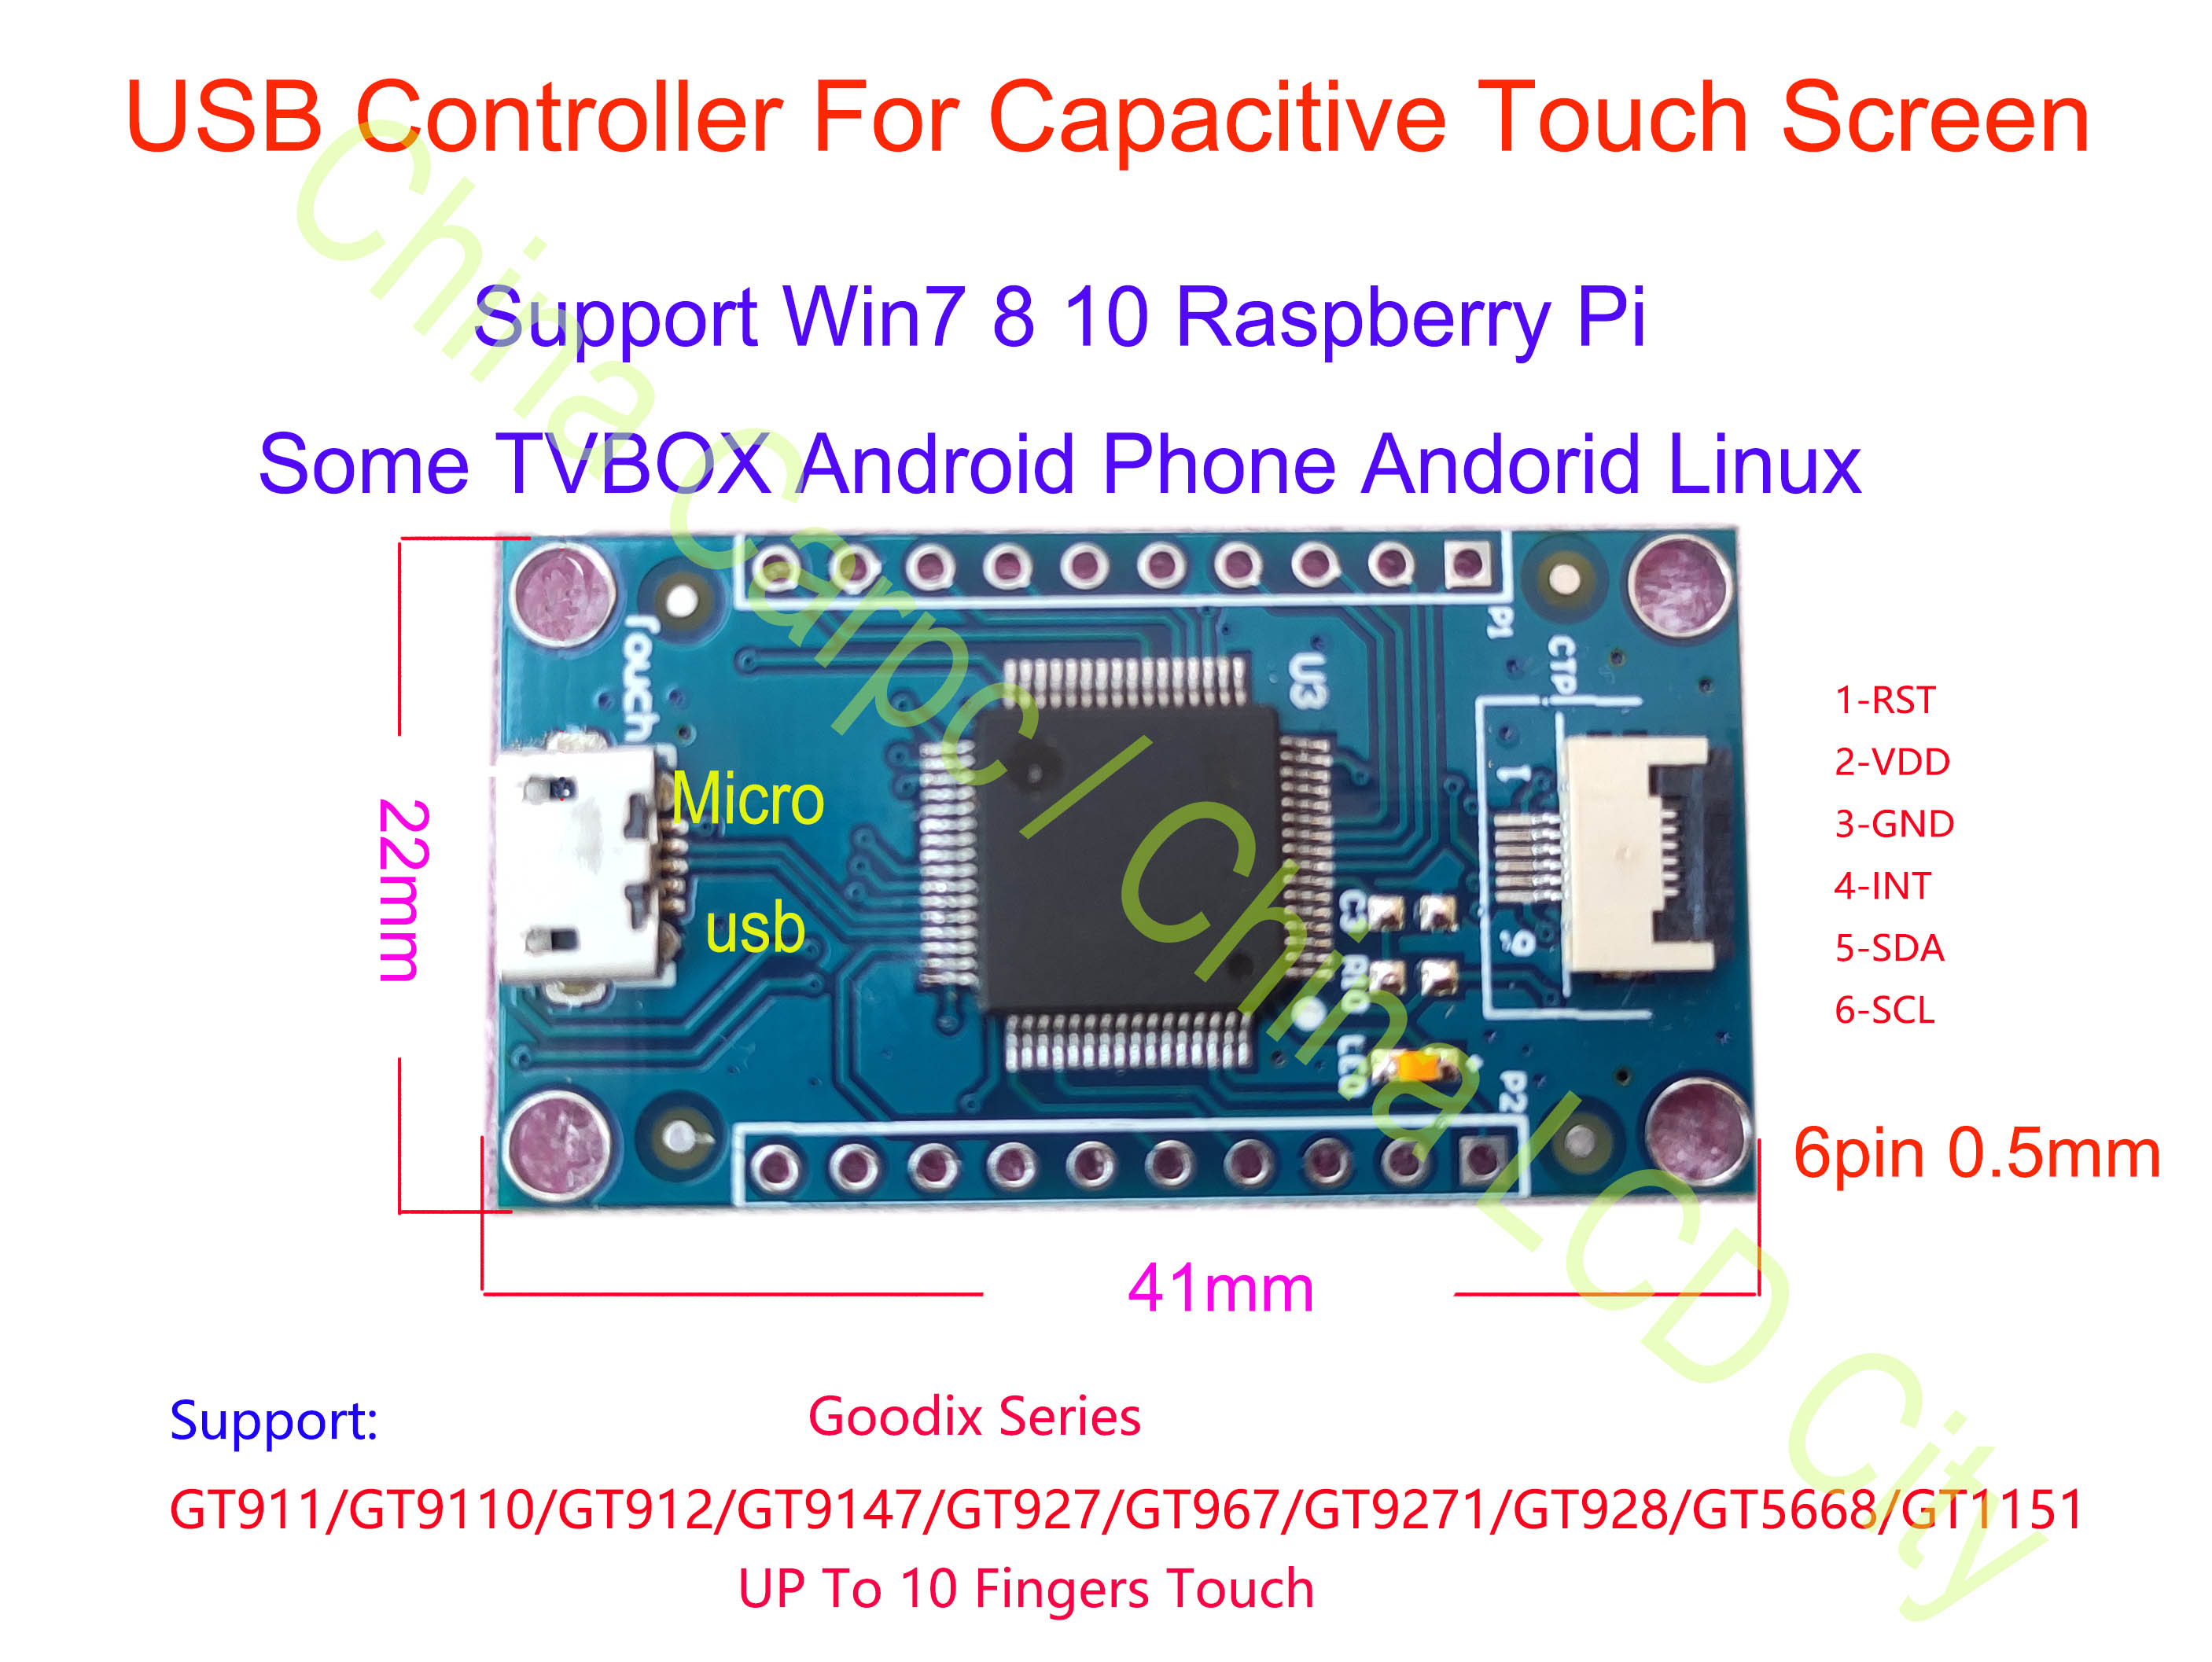 USB Controller For Capacitive <font><b>Touch</b></font> <font><b>Screen</b></font> GT911/GT910/GT912/GT928/GT9271/GT9110/GT5668/GT1151/GT967/GT9147 Win8 10 <font><b>Raspberry</b></font> <font><b>Pi</b></font> image